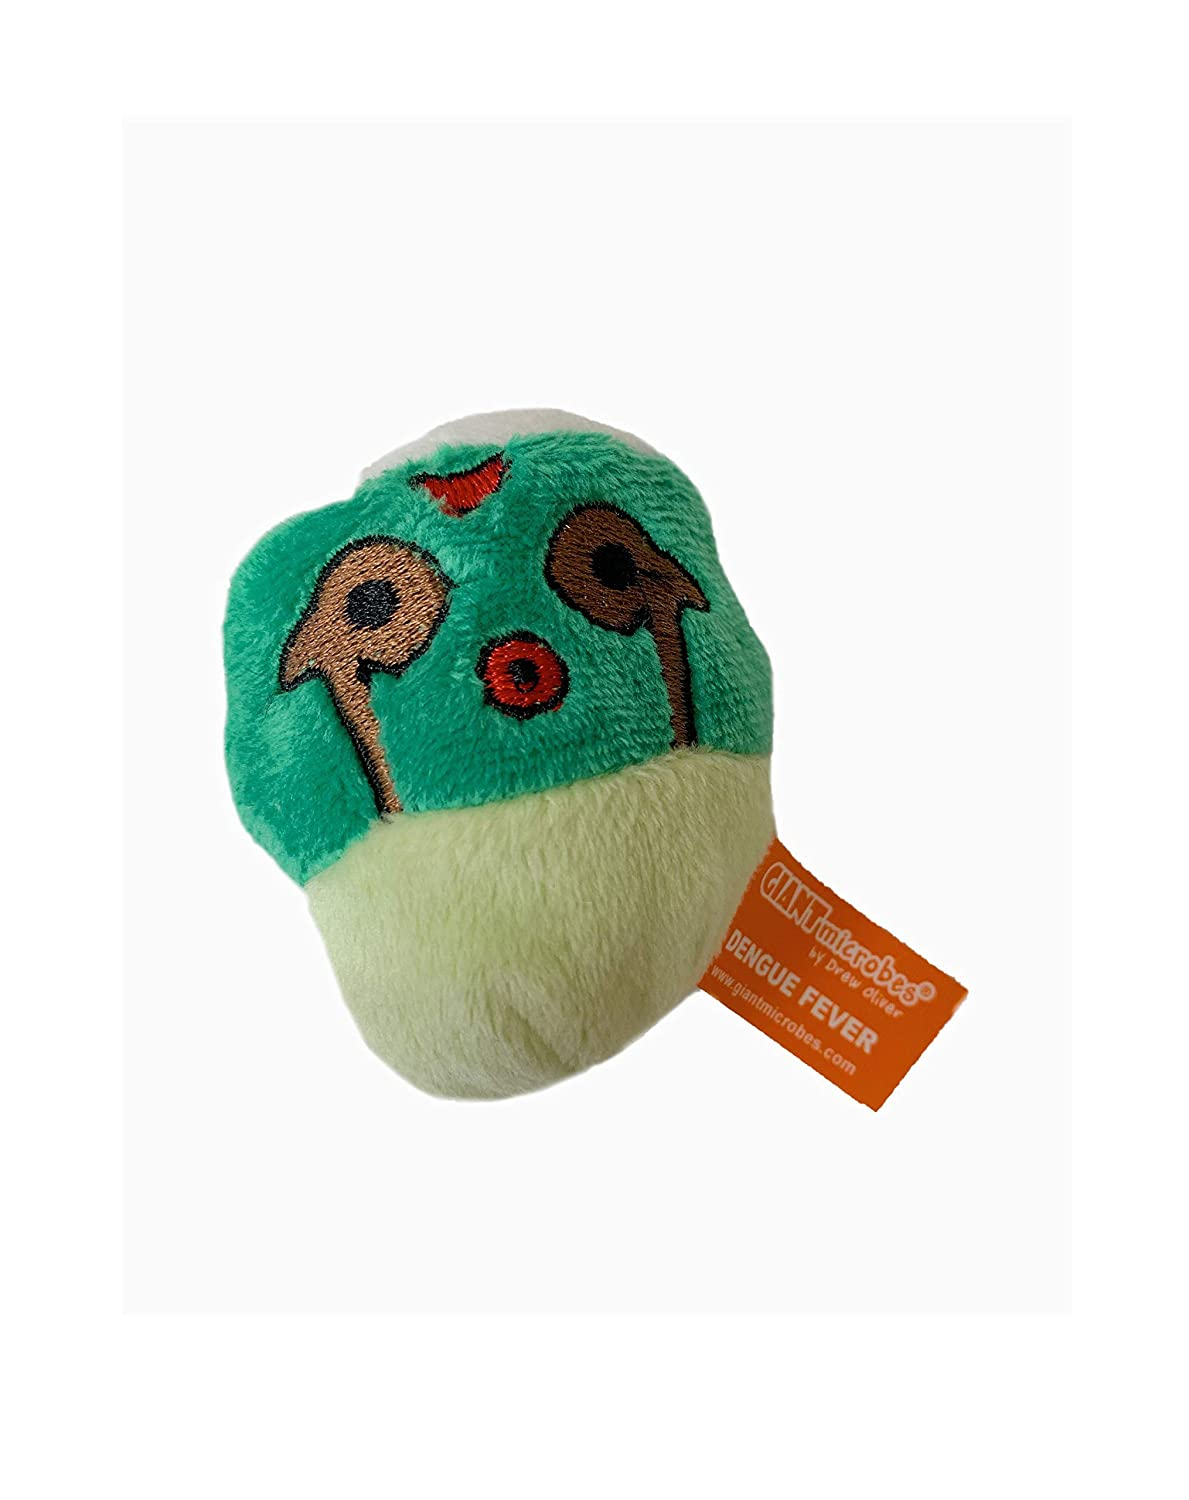 Exotic Vacation GIANTmicrobes Themed Gift Boxes